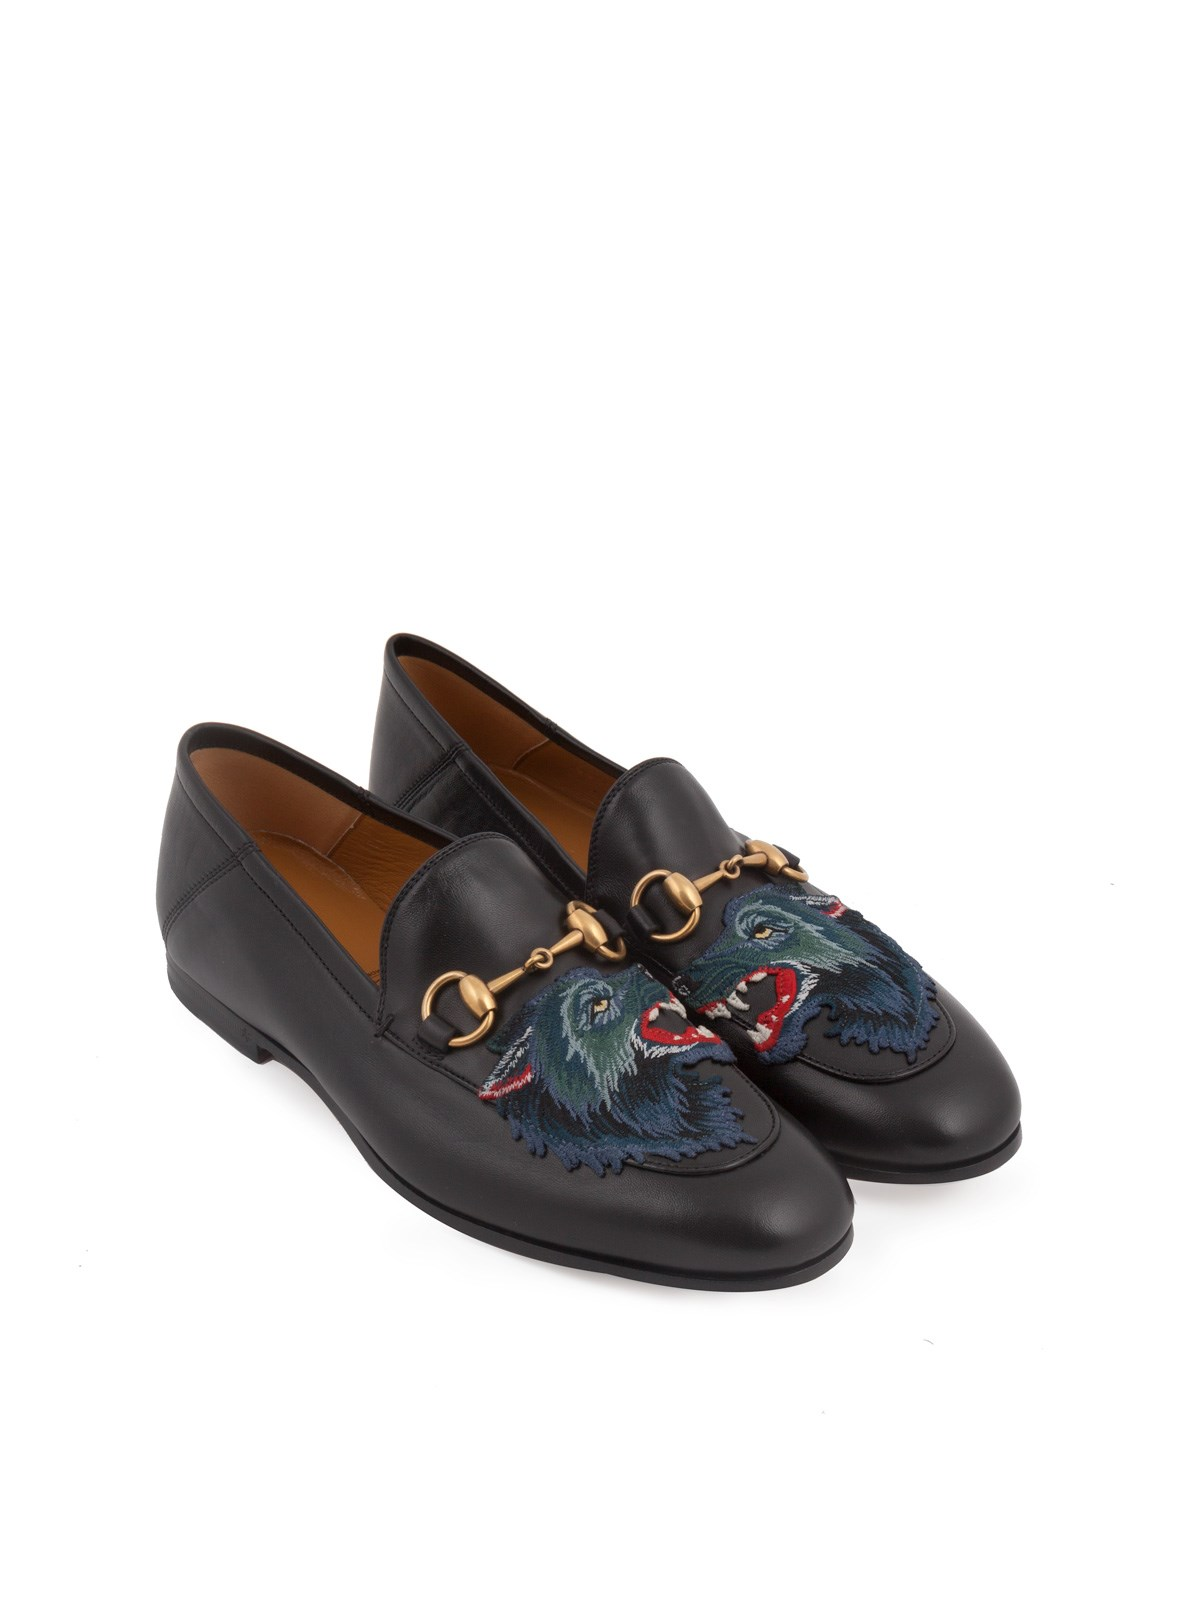 f8e0b322fe8 gucci LOAFERS WITH EMBROIDERED WOLF available on montiboutique.com ...